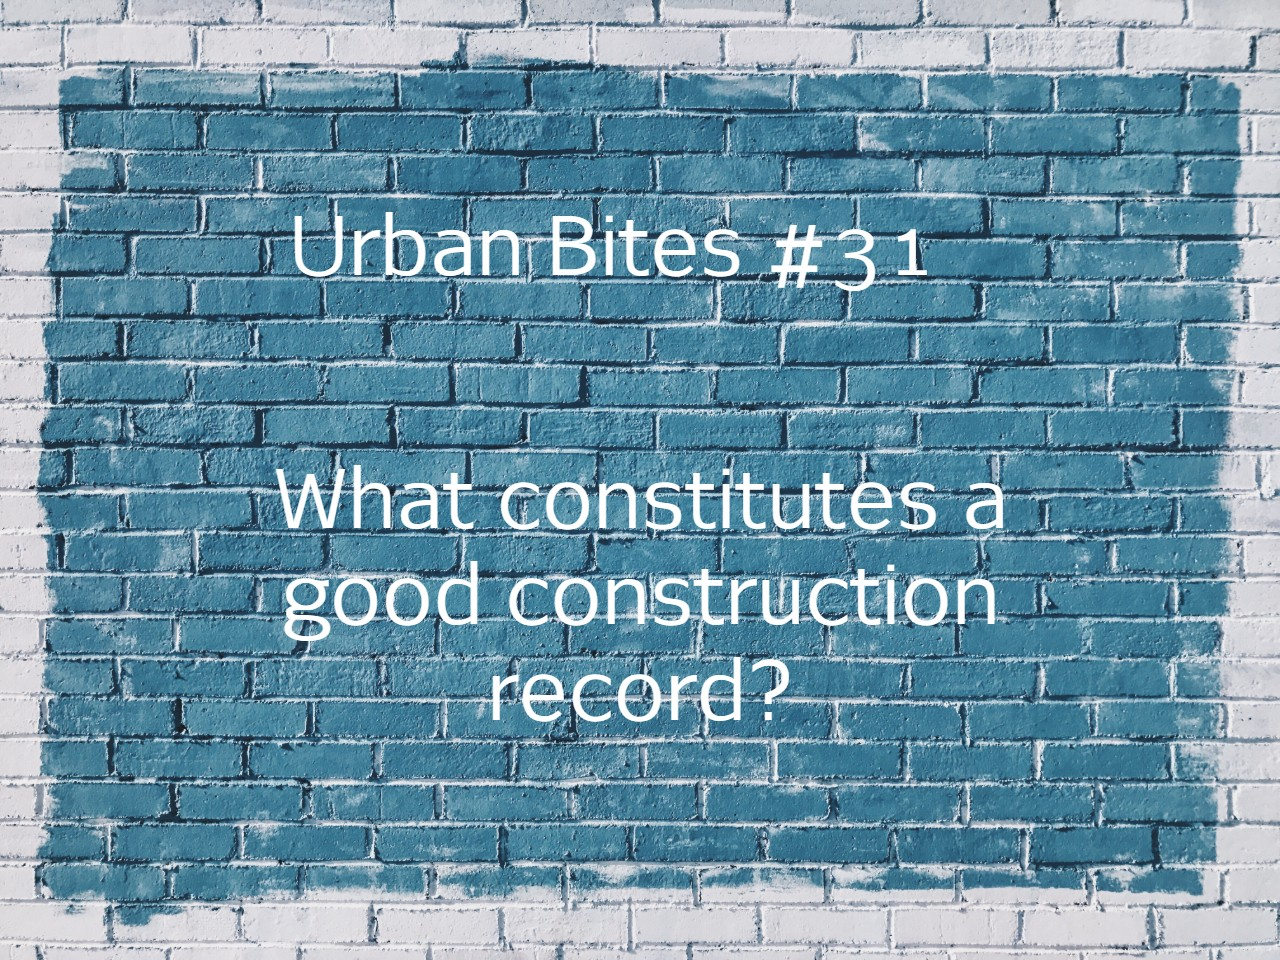 Urban Bites #31 - What constitutes a good construction record